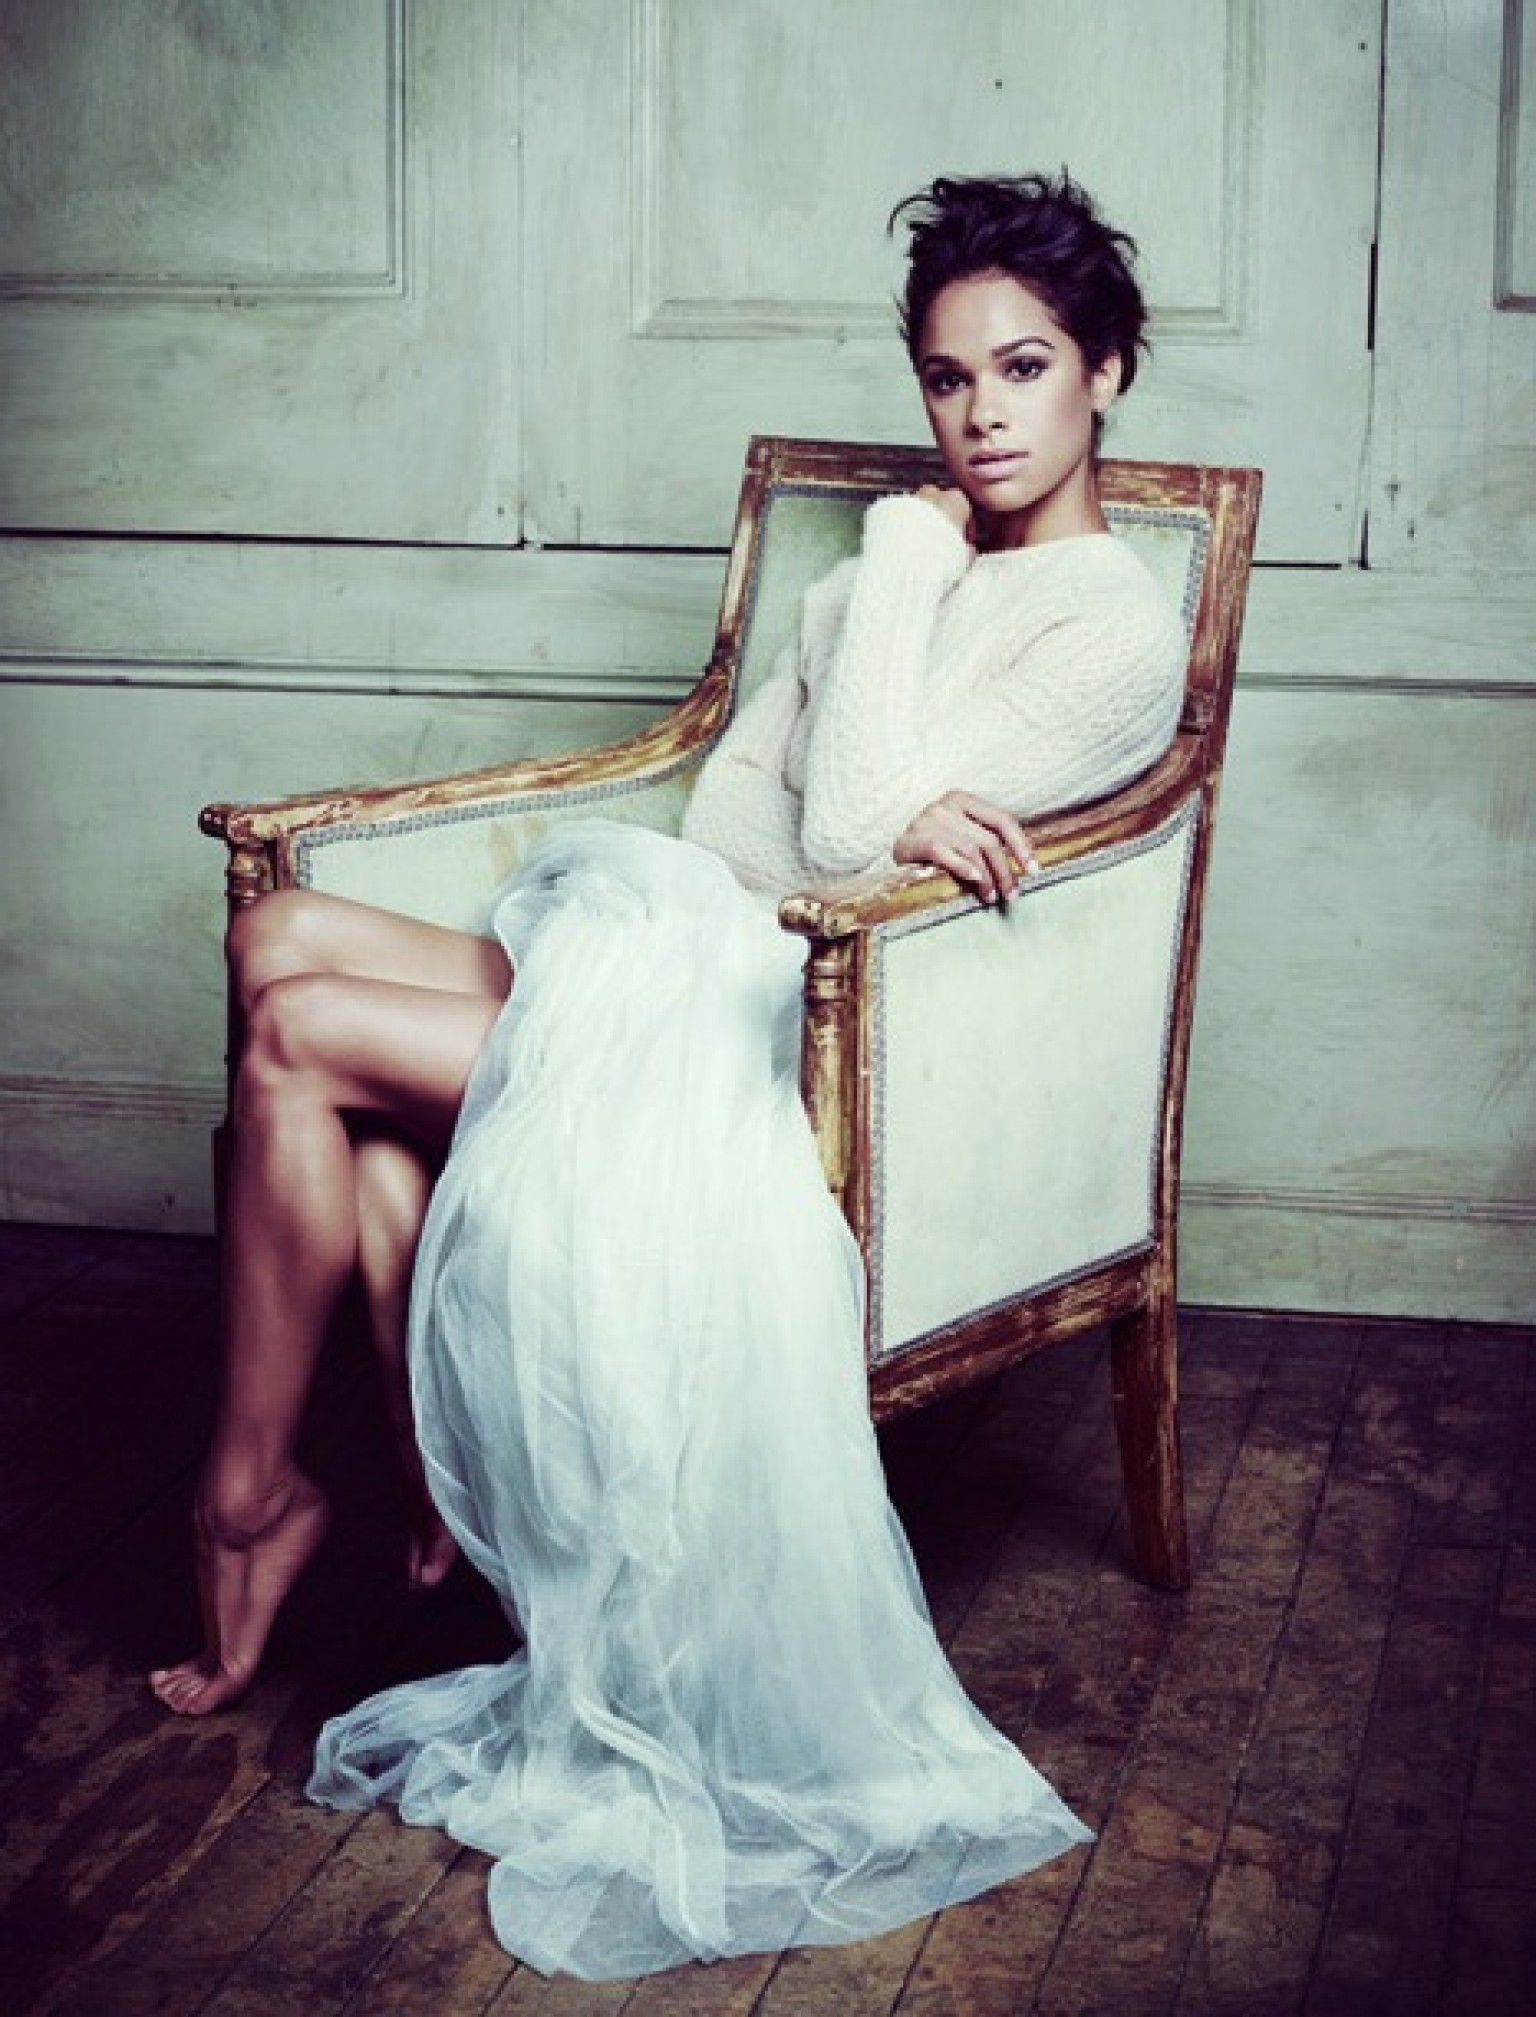 Misty Copeland Becomes First Black Principal Dancer at American Ballet Theater